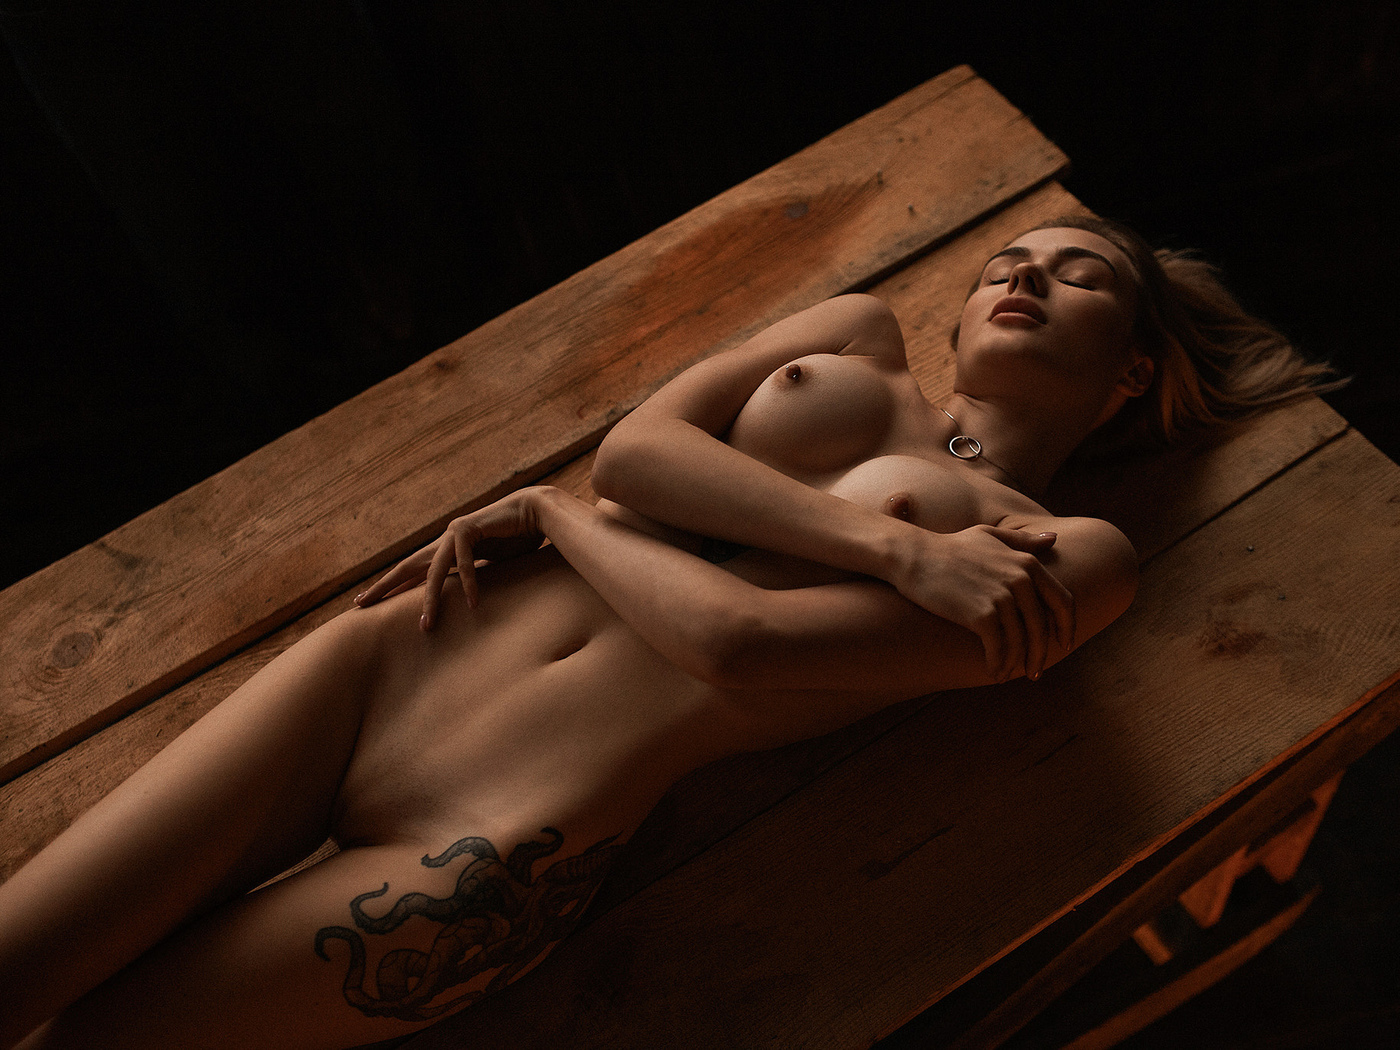 Nude blind woman pics